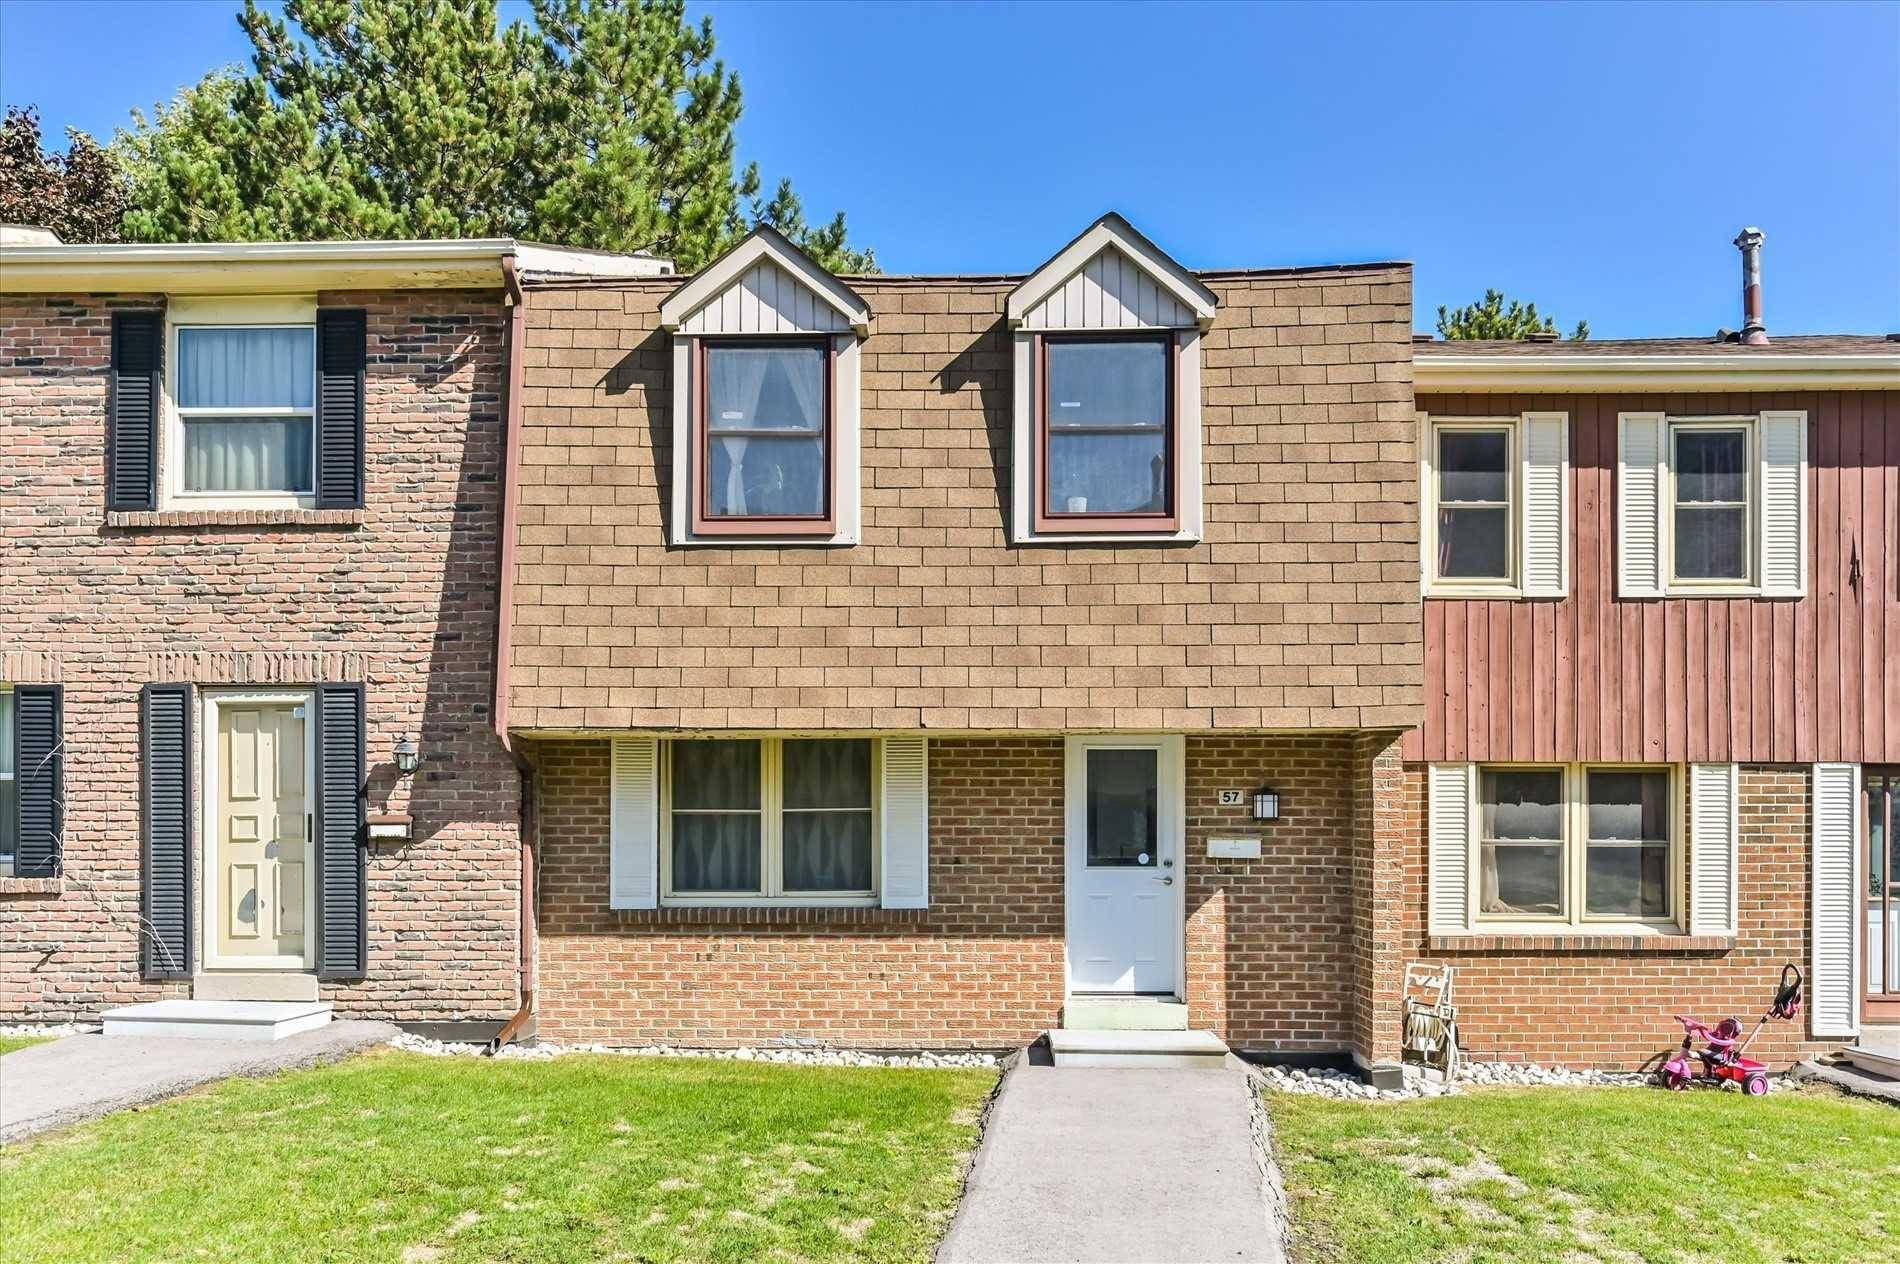 Buliding: 2061 Bridletowne Circle, Toronto, ON